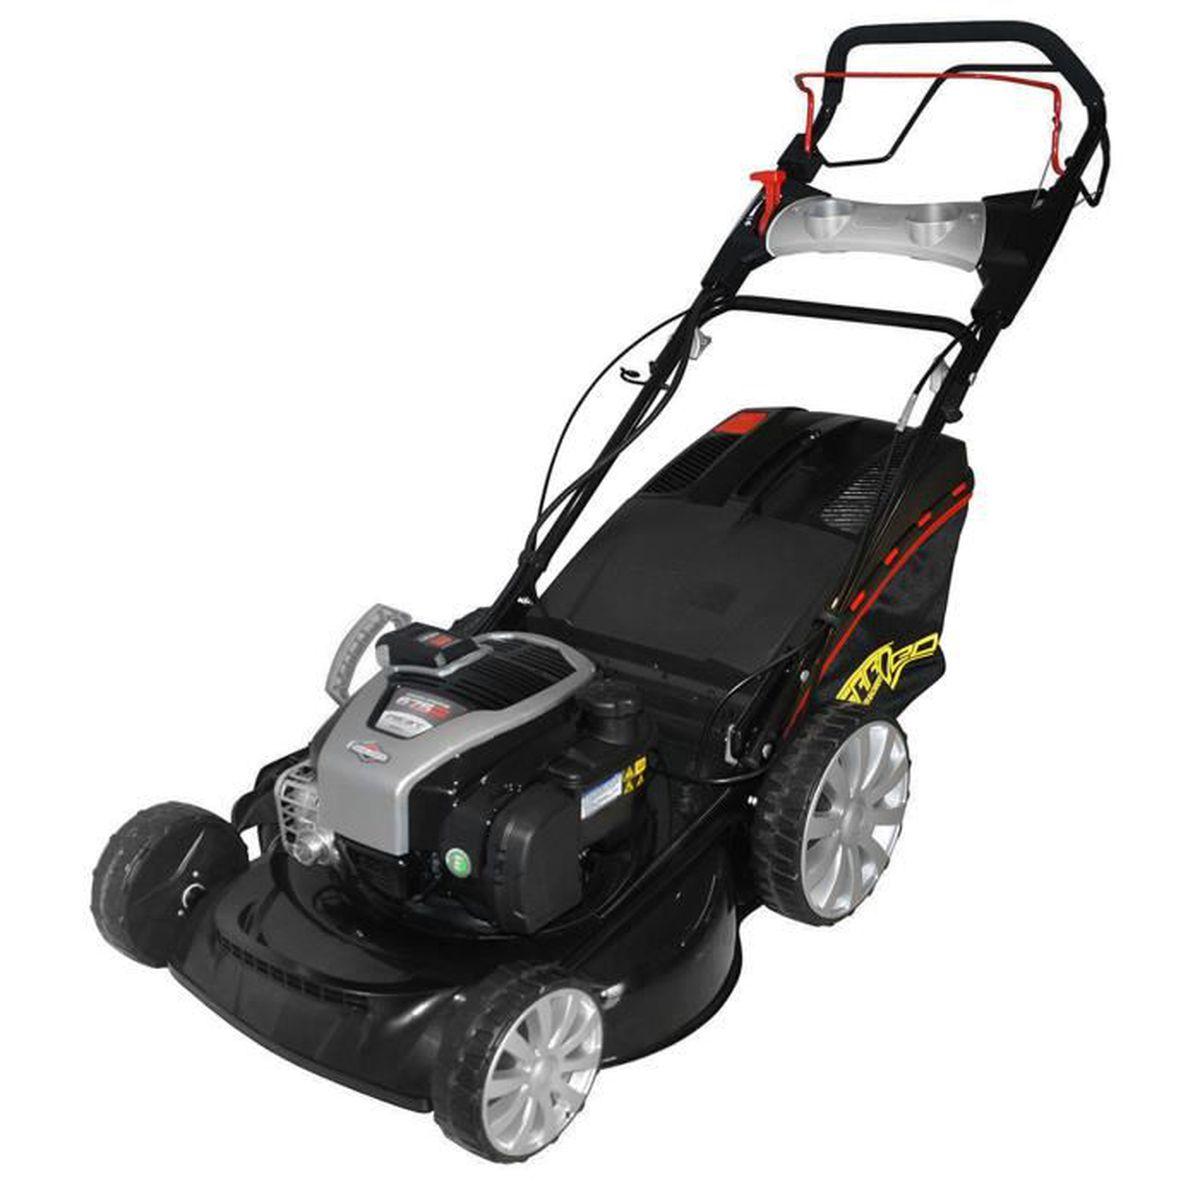 tondeuse gazon thermique 163cc briggs stratton demarrage electrique achat vente tondeuse. Black Bedroom Furniture Sets. Home Design Ideas